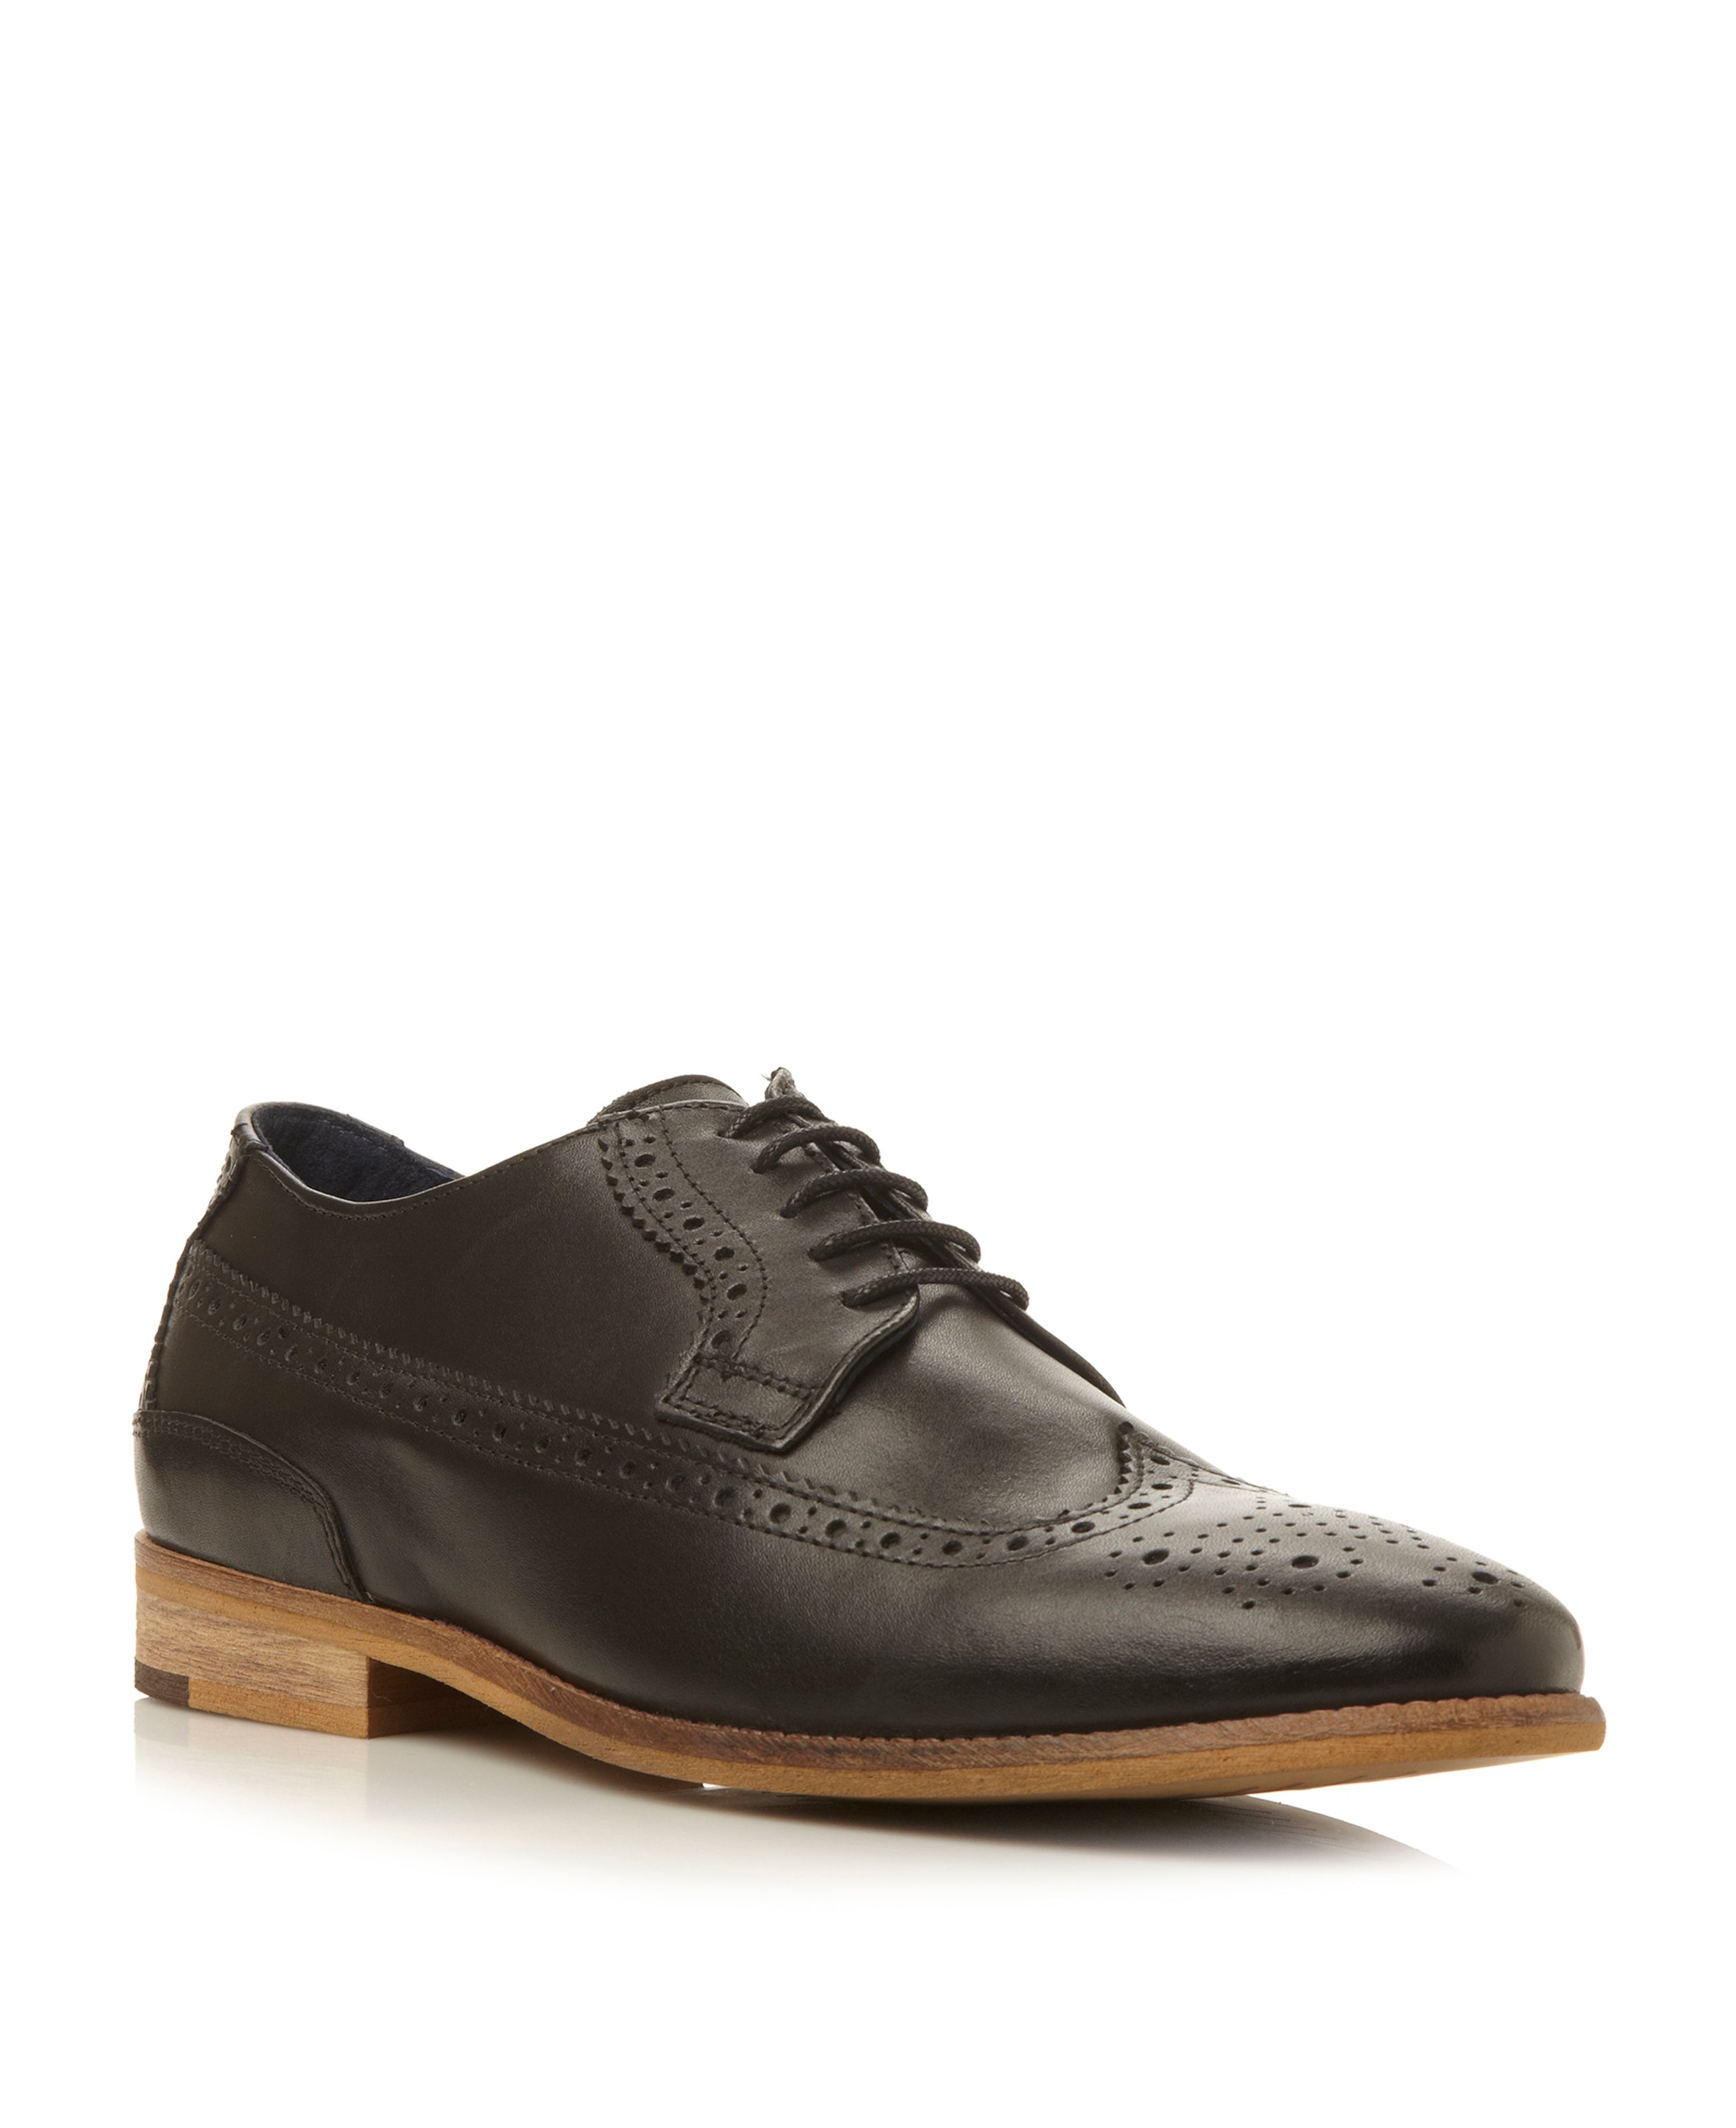 Raston natural sole brogues